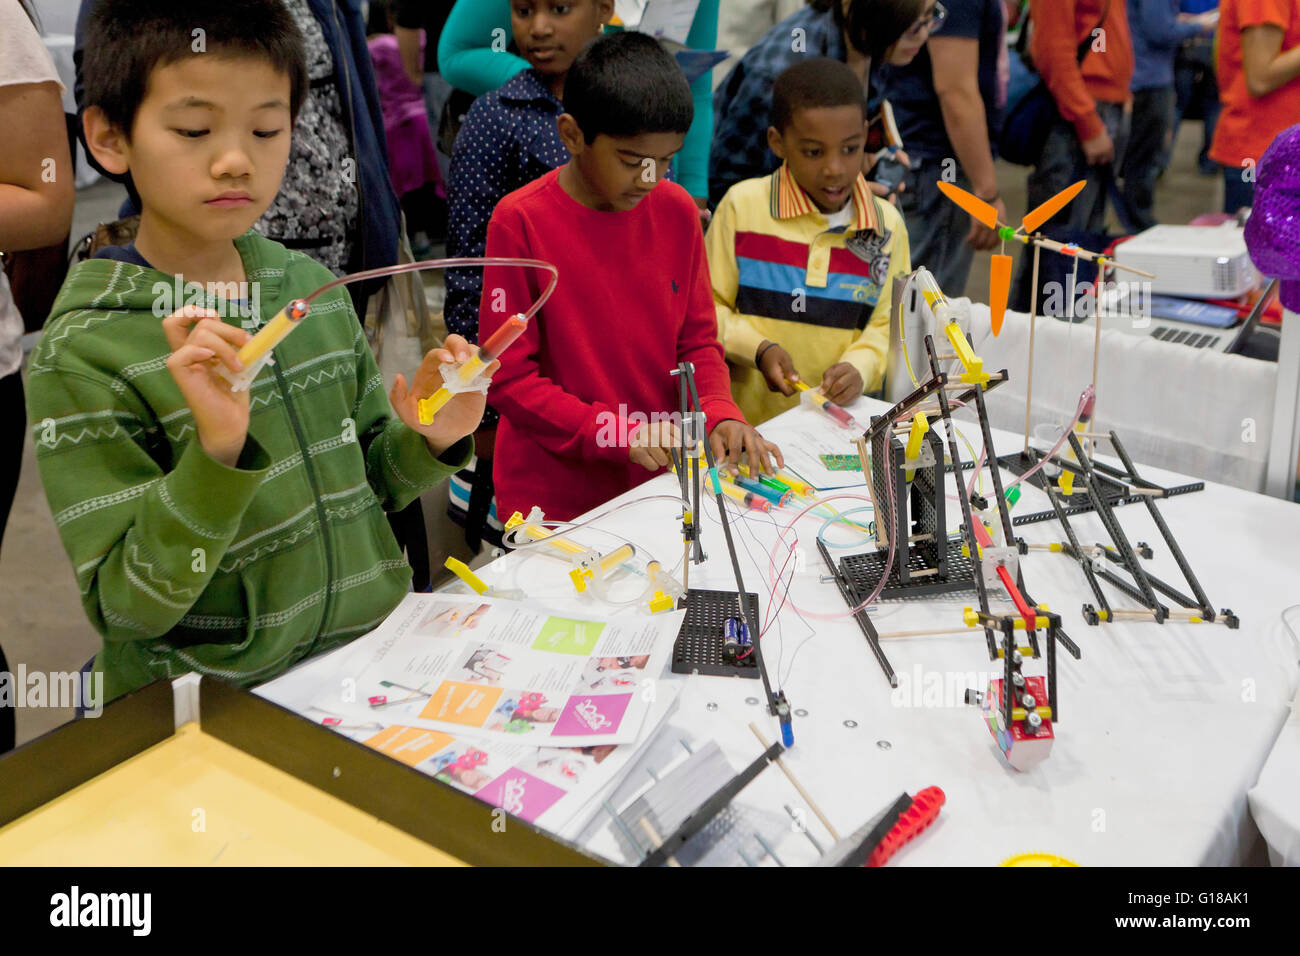 Children interacting with building toys at the USA Science and Engineering Festival - Washington, DC USA - Stock Image